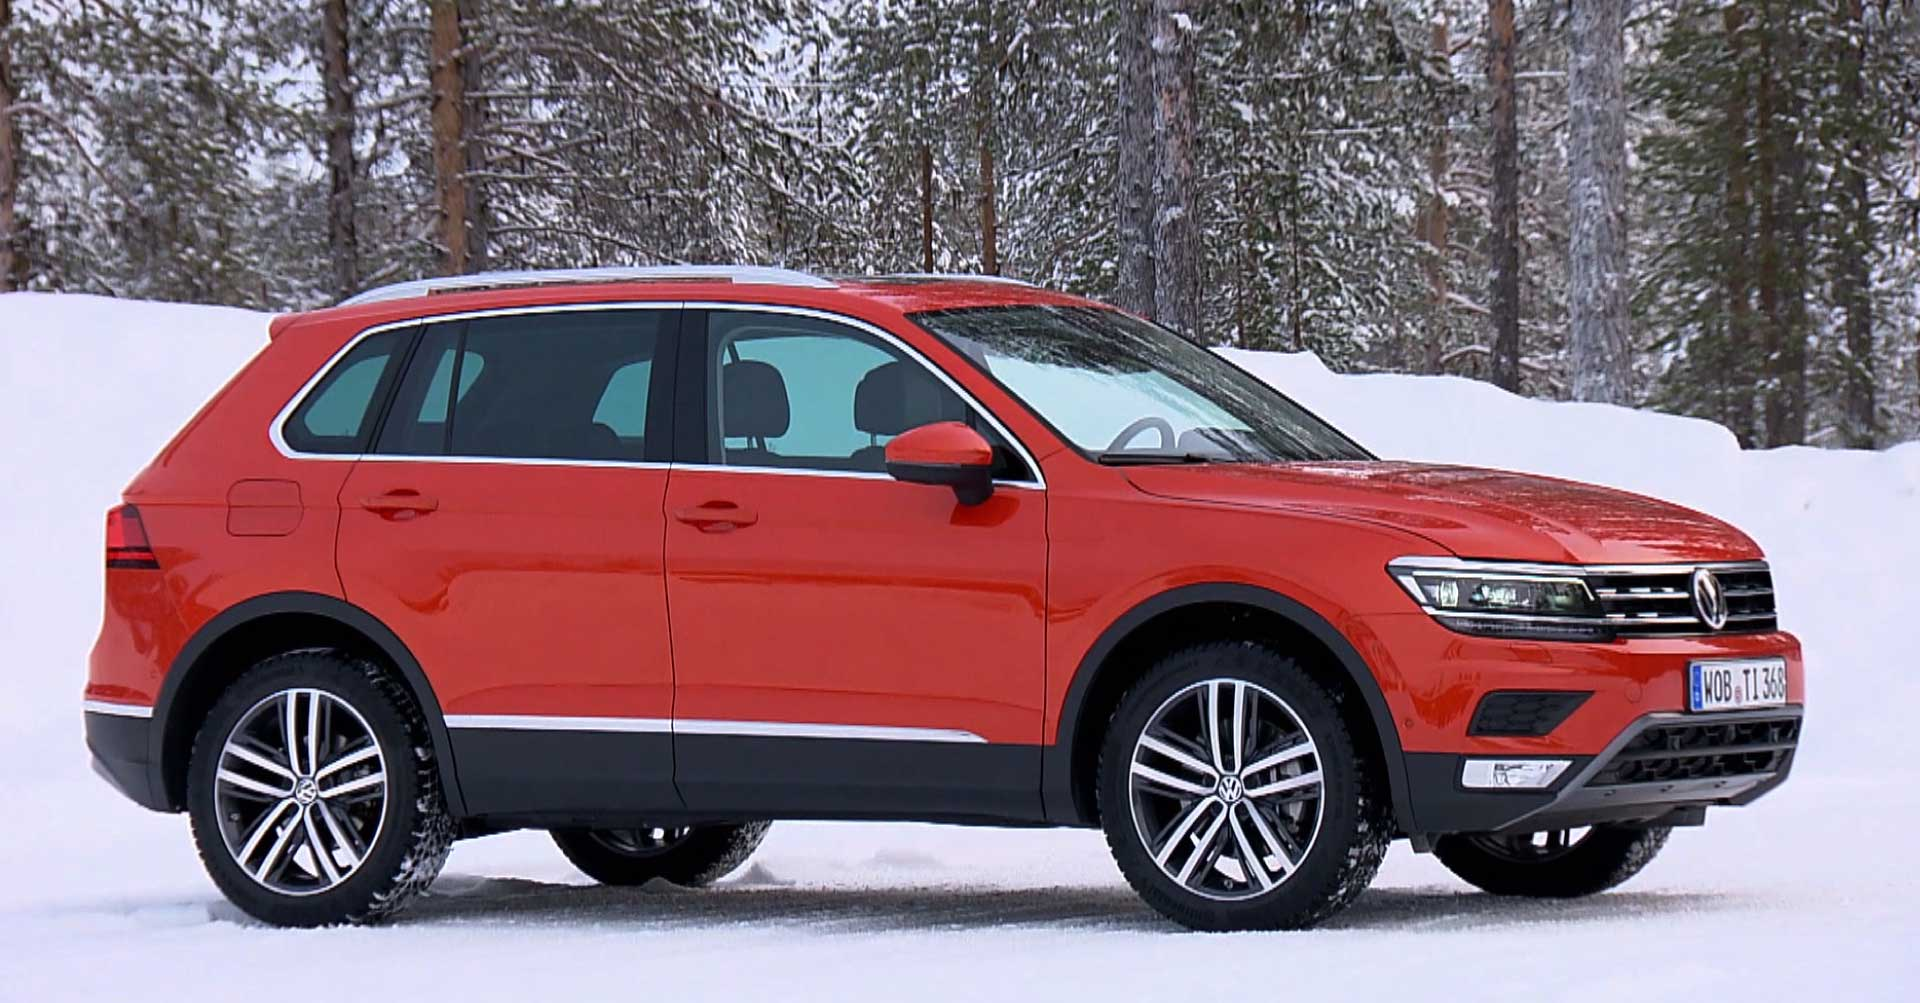 2018 Vw Tiguan Canadian Car Reviews Driving Television